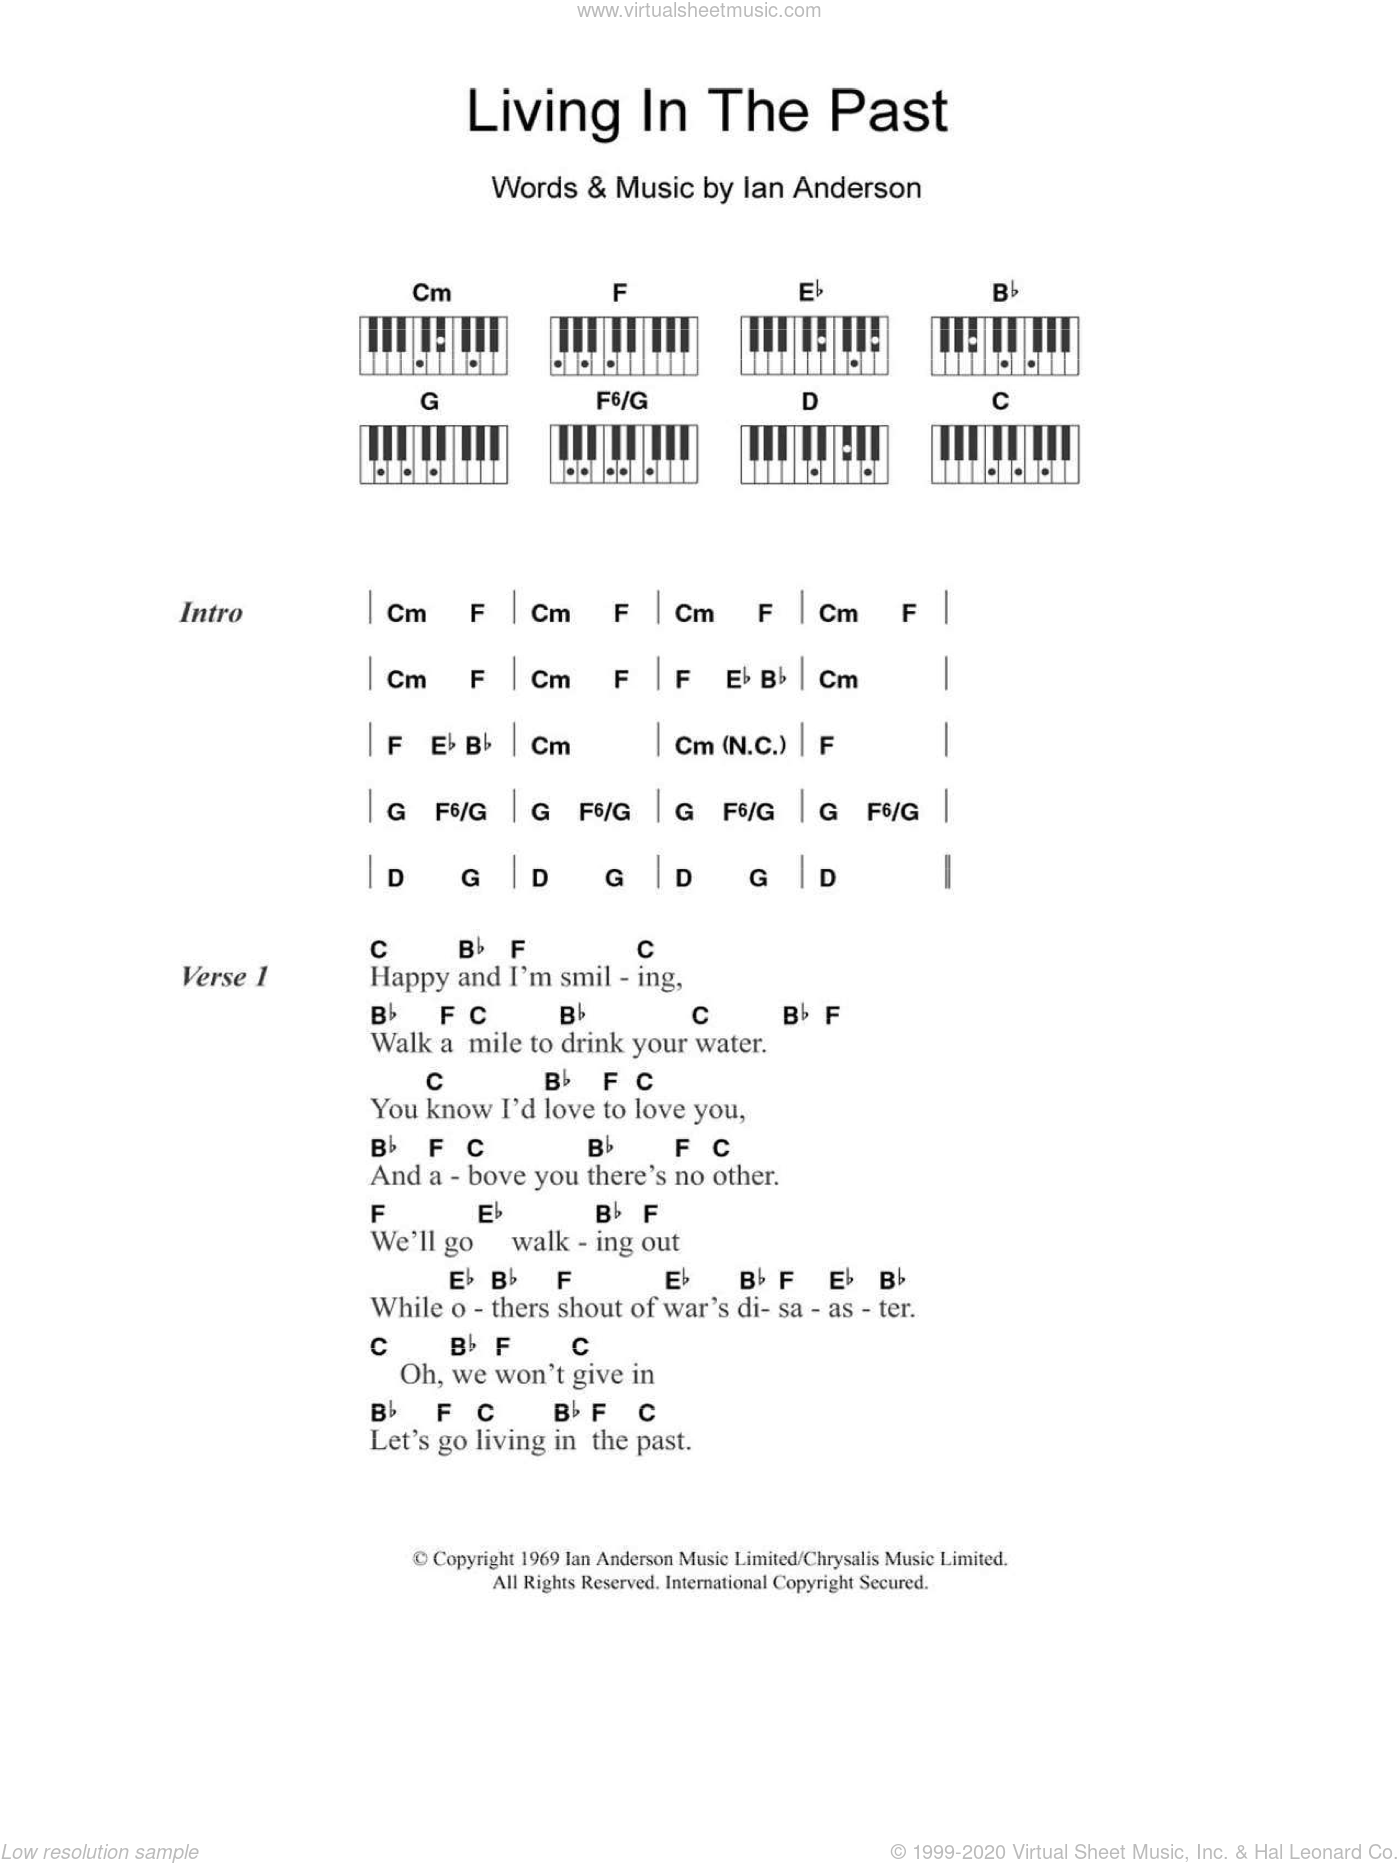 Living In The Past sheet music for piano solo (chords, lyrics, melody) by Ian Anderson